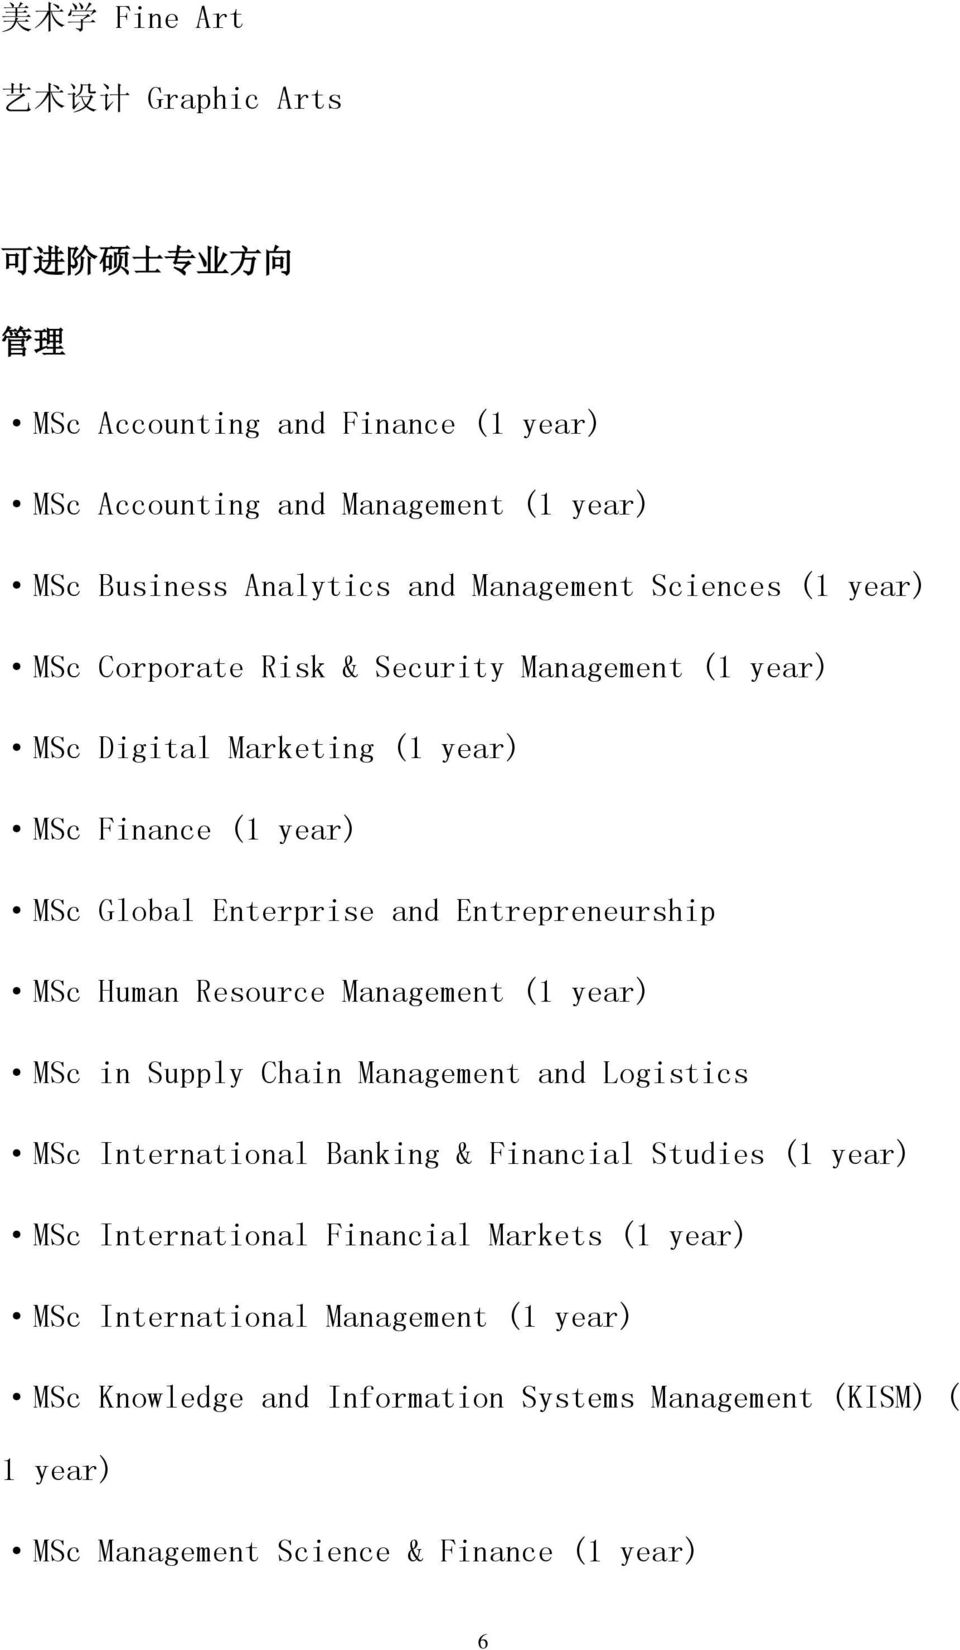 Entrepreneurship MSc Human Resource Management (1 year) MSc in Supply Chain Management and Logistics MSc International Banking & Financial Studies (1 year) MSc